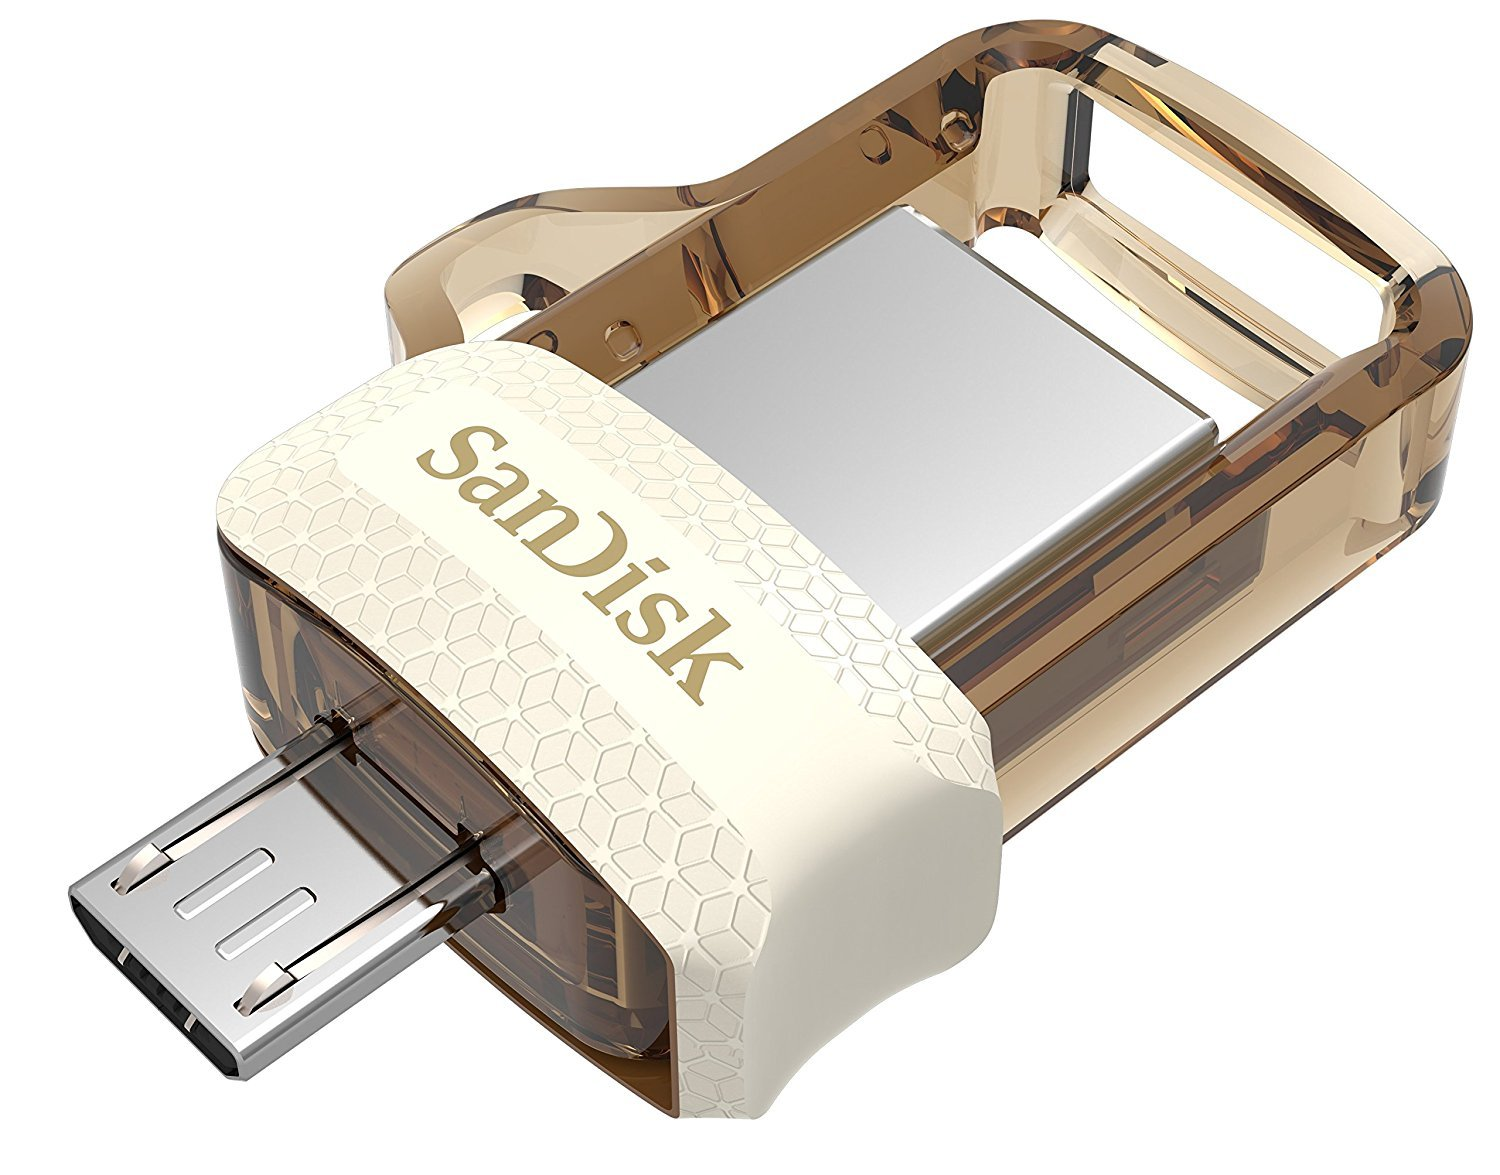 Amazon.in: Buy SanDisk Ultra Dual 64GB USB 3.0 OTG Pen Drive (Gold) Online  at Low Prices in India | SanDisk Reviews & Ratings